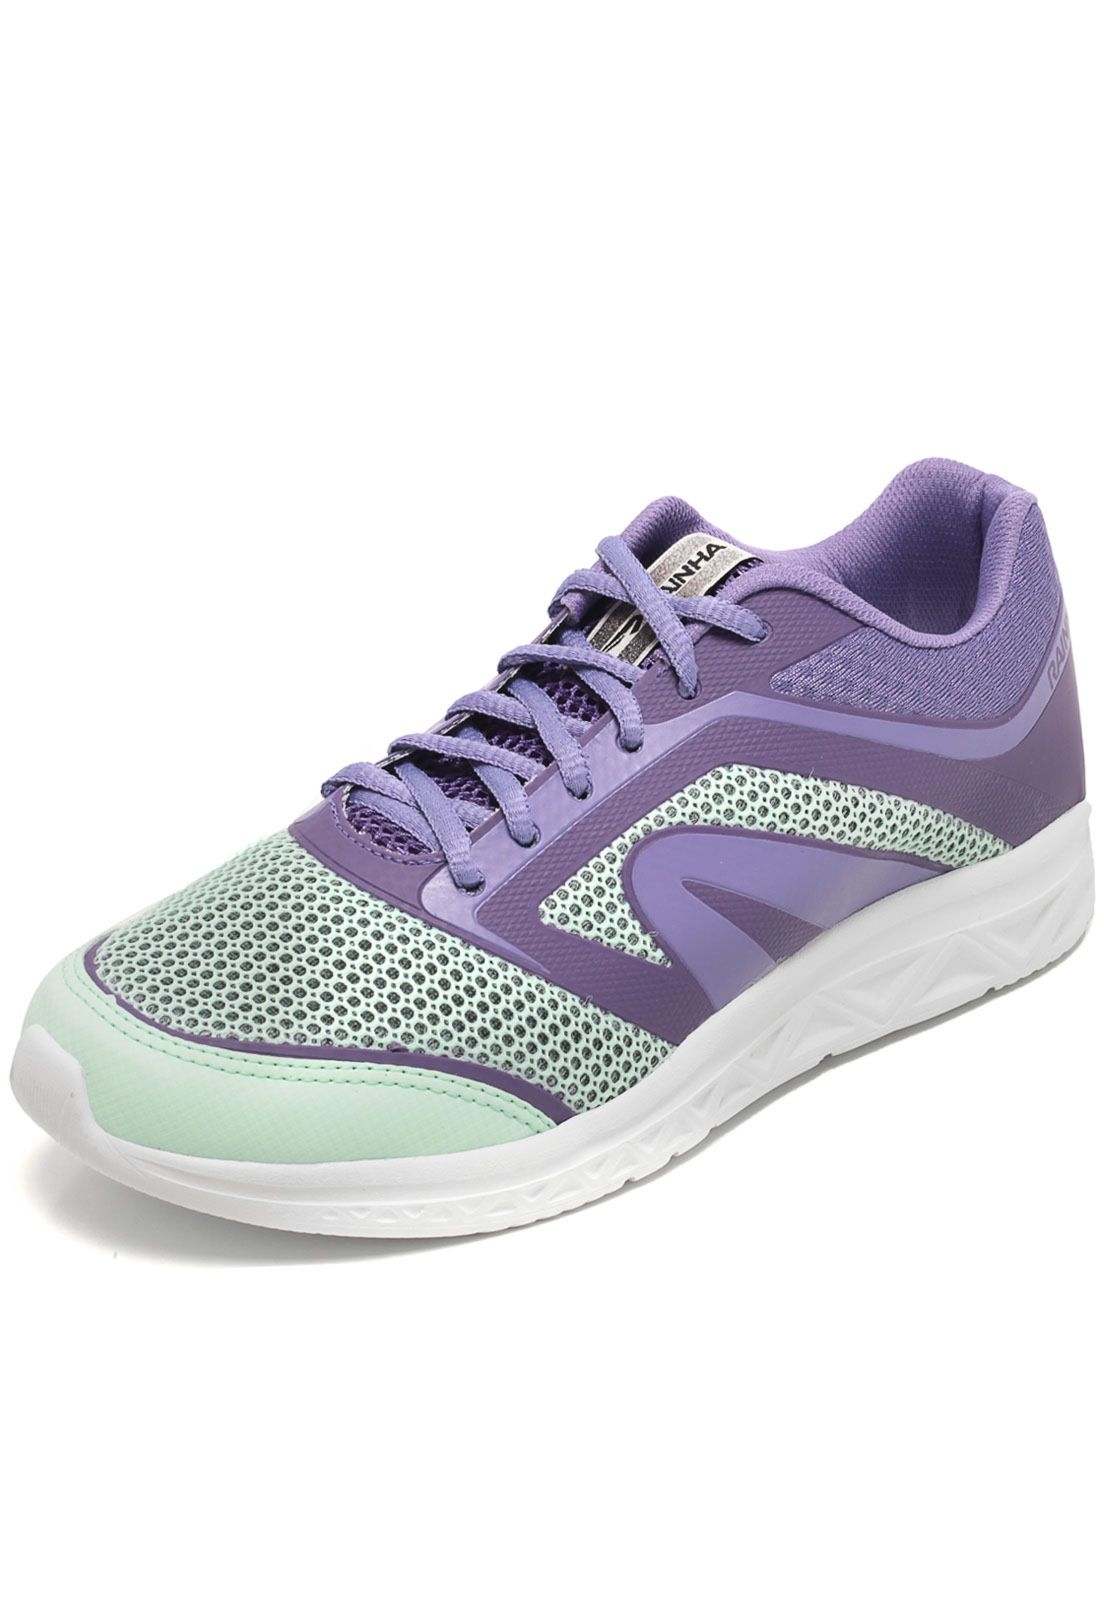 ed92650c77 Tênis Rainha Chase Verde/Roxo in 2019   sports   Sports, Sneakers, Shoes